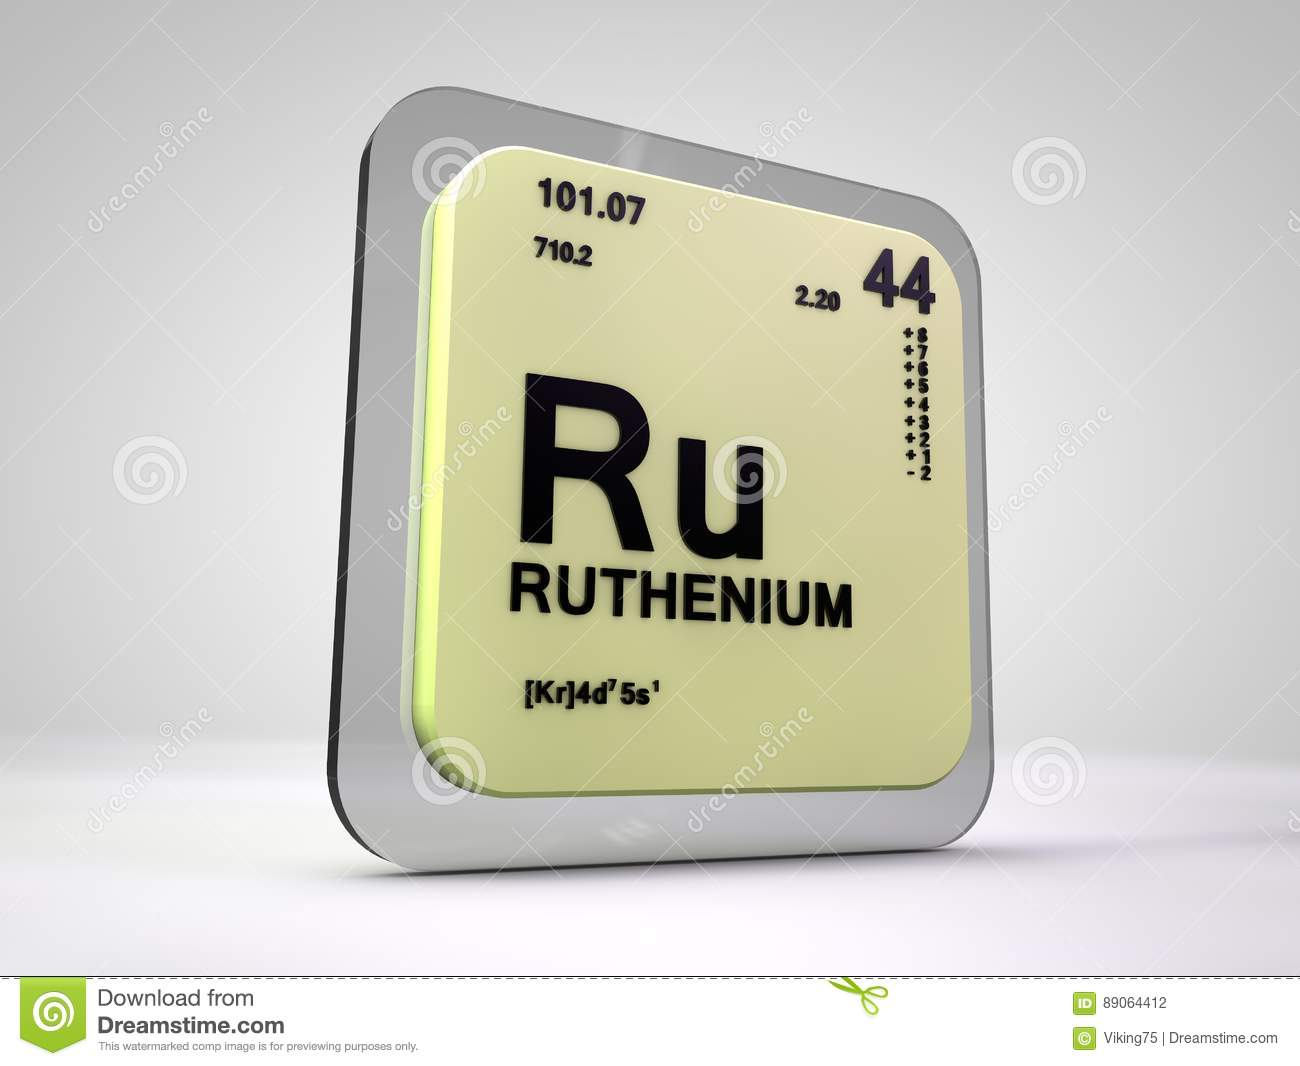 Ruthenium ru chemical element periodic table stock royalty free illustration download ruthenium ru chemical element periodic table gamestrikefo Choice Image